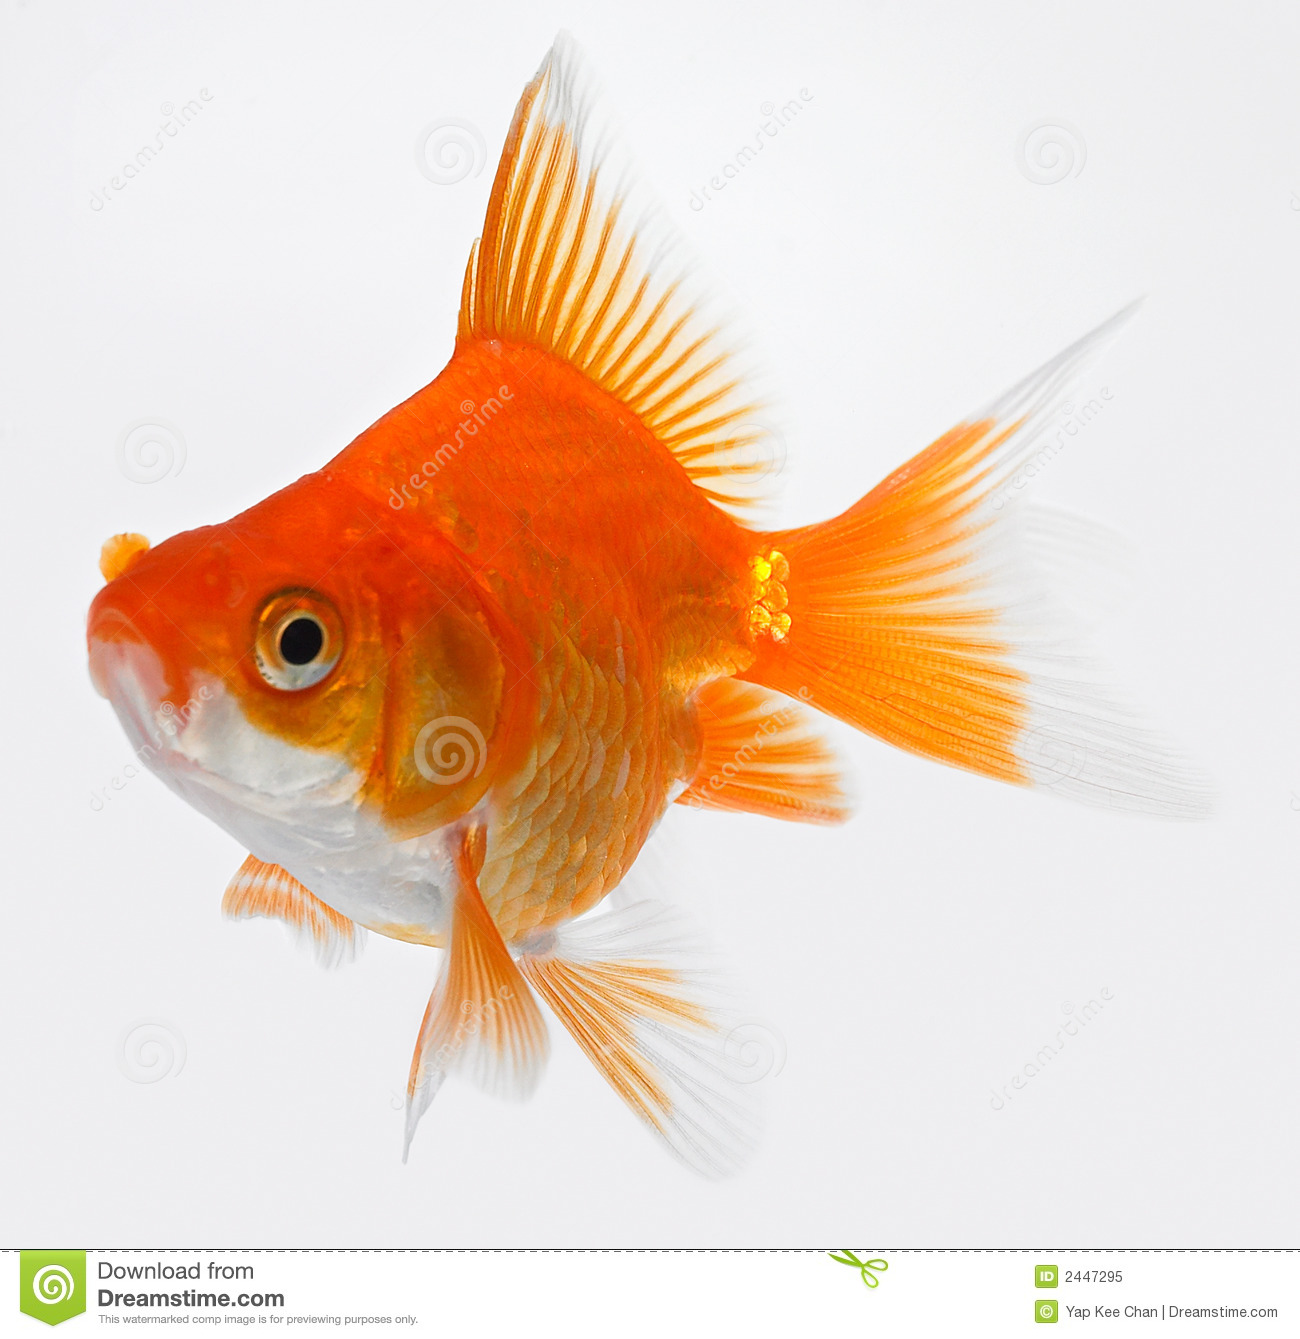 Fish Stock Photos, Images, & Pictures - 649,293 Images